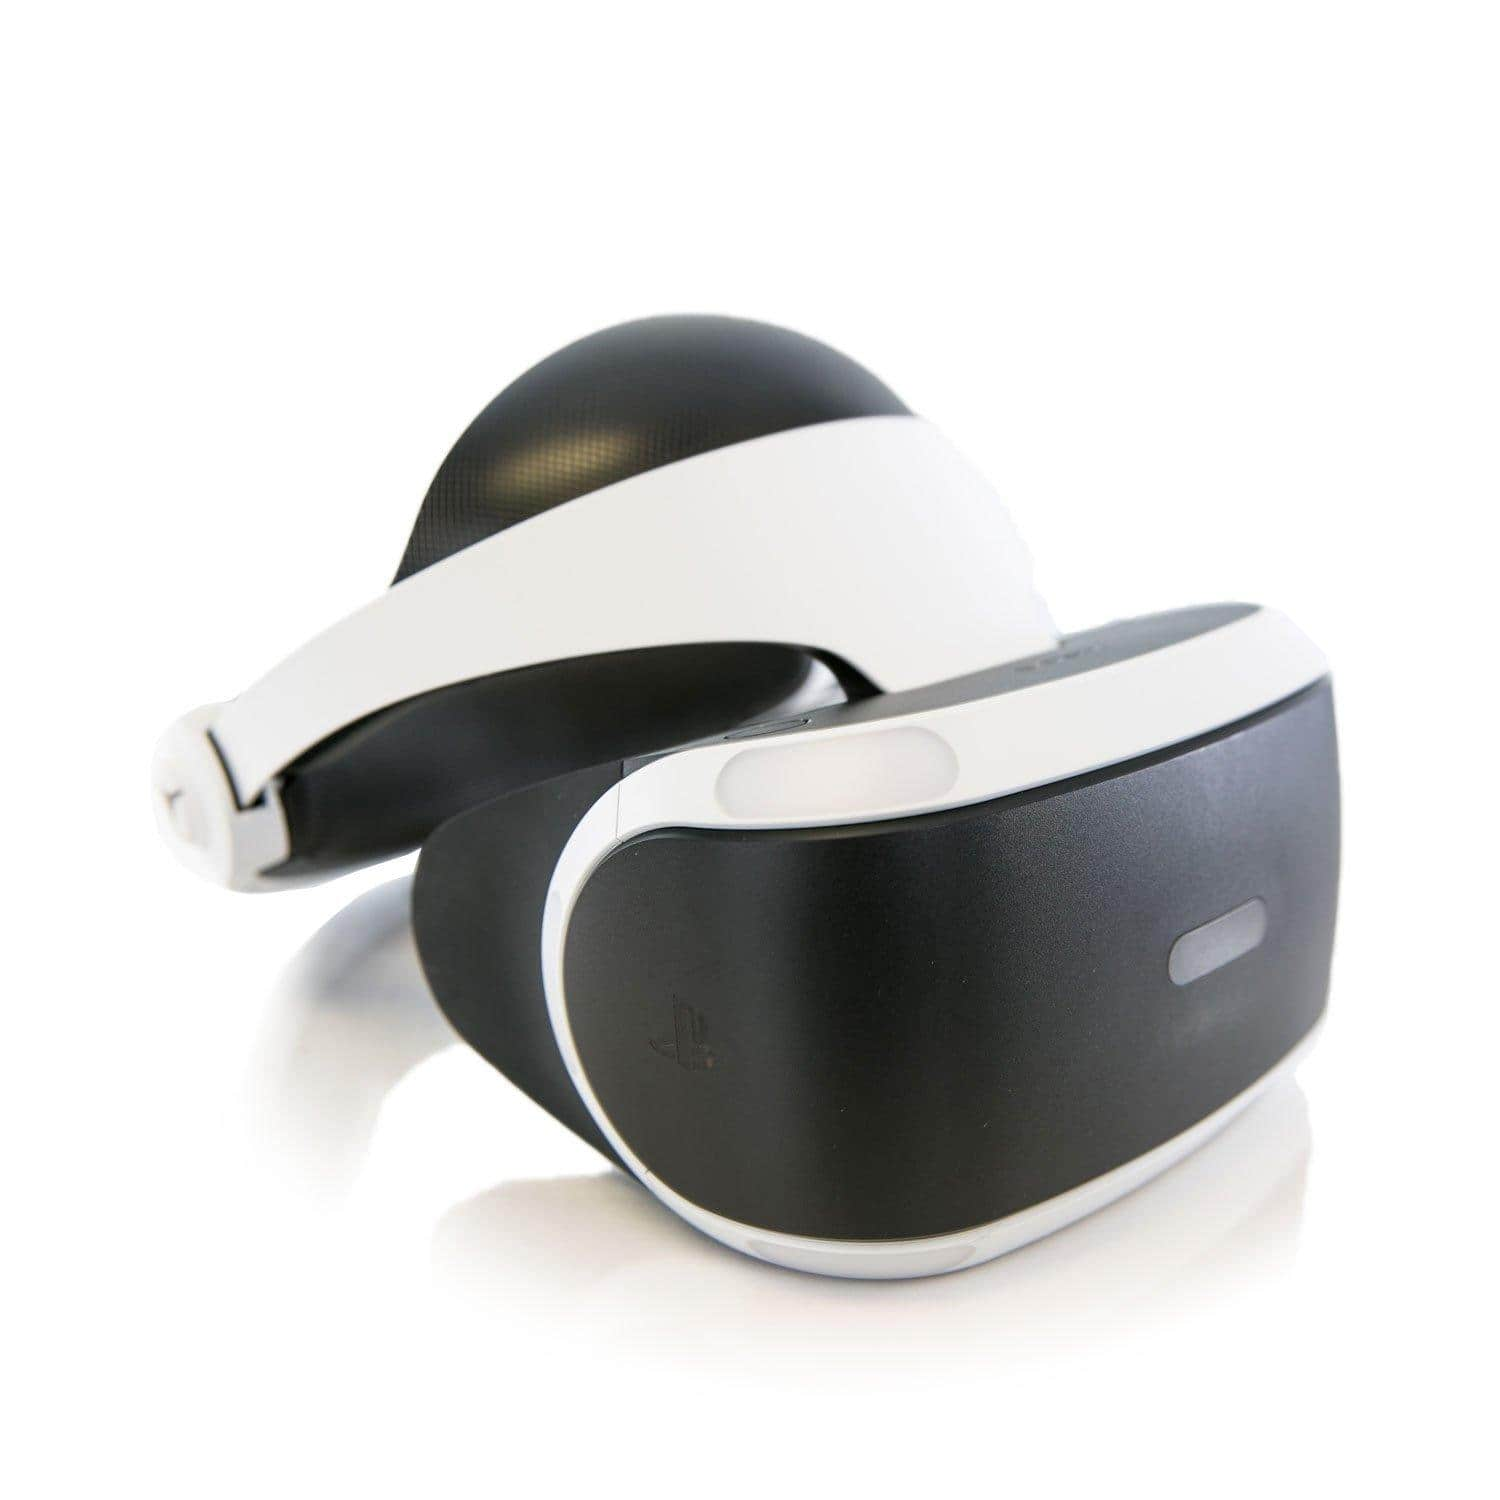 Playstation VR - HDR Compatible (GameStop Premium Refurbished) $99.99 Only for today (04/08/2020)